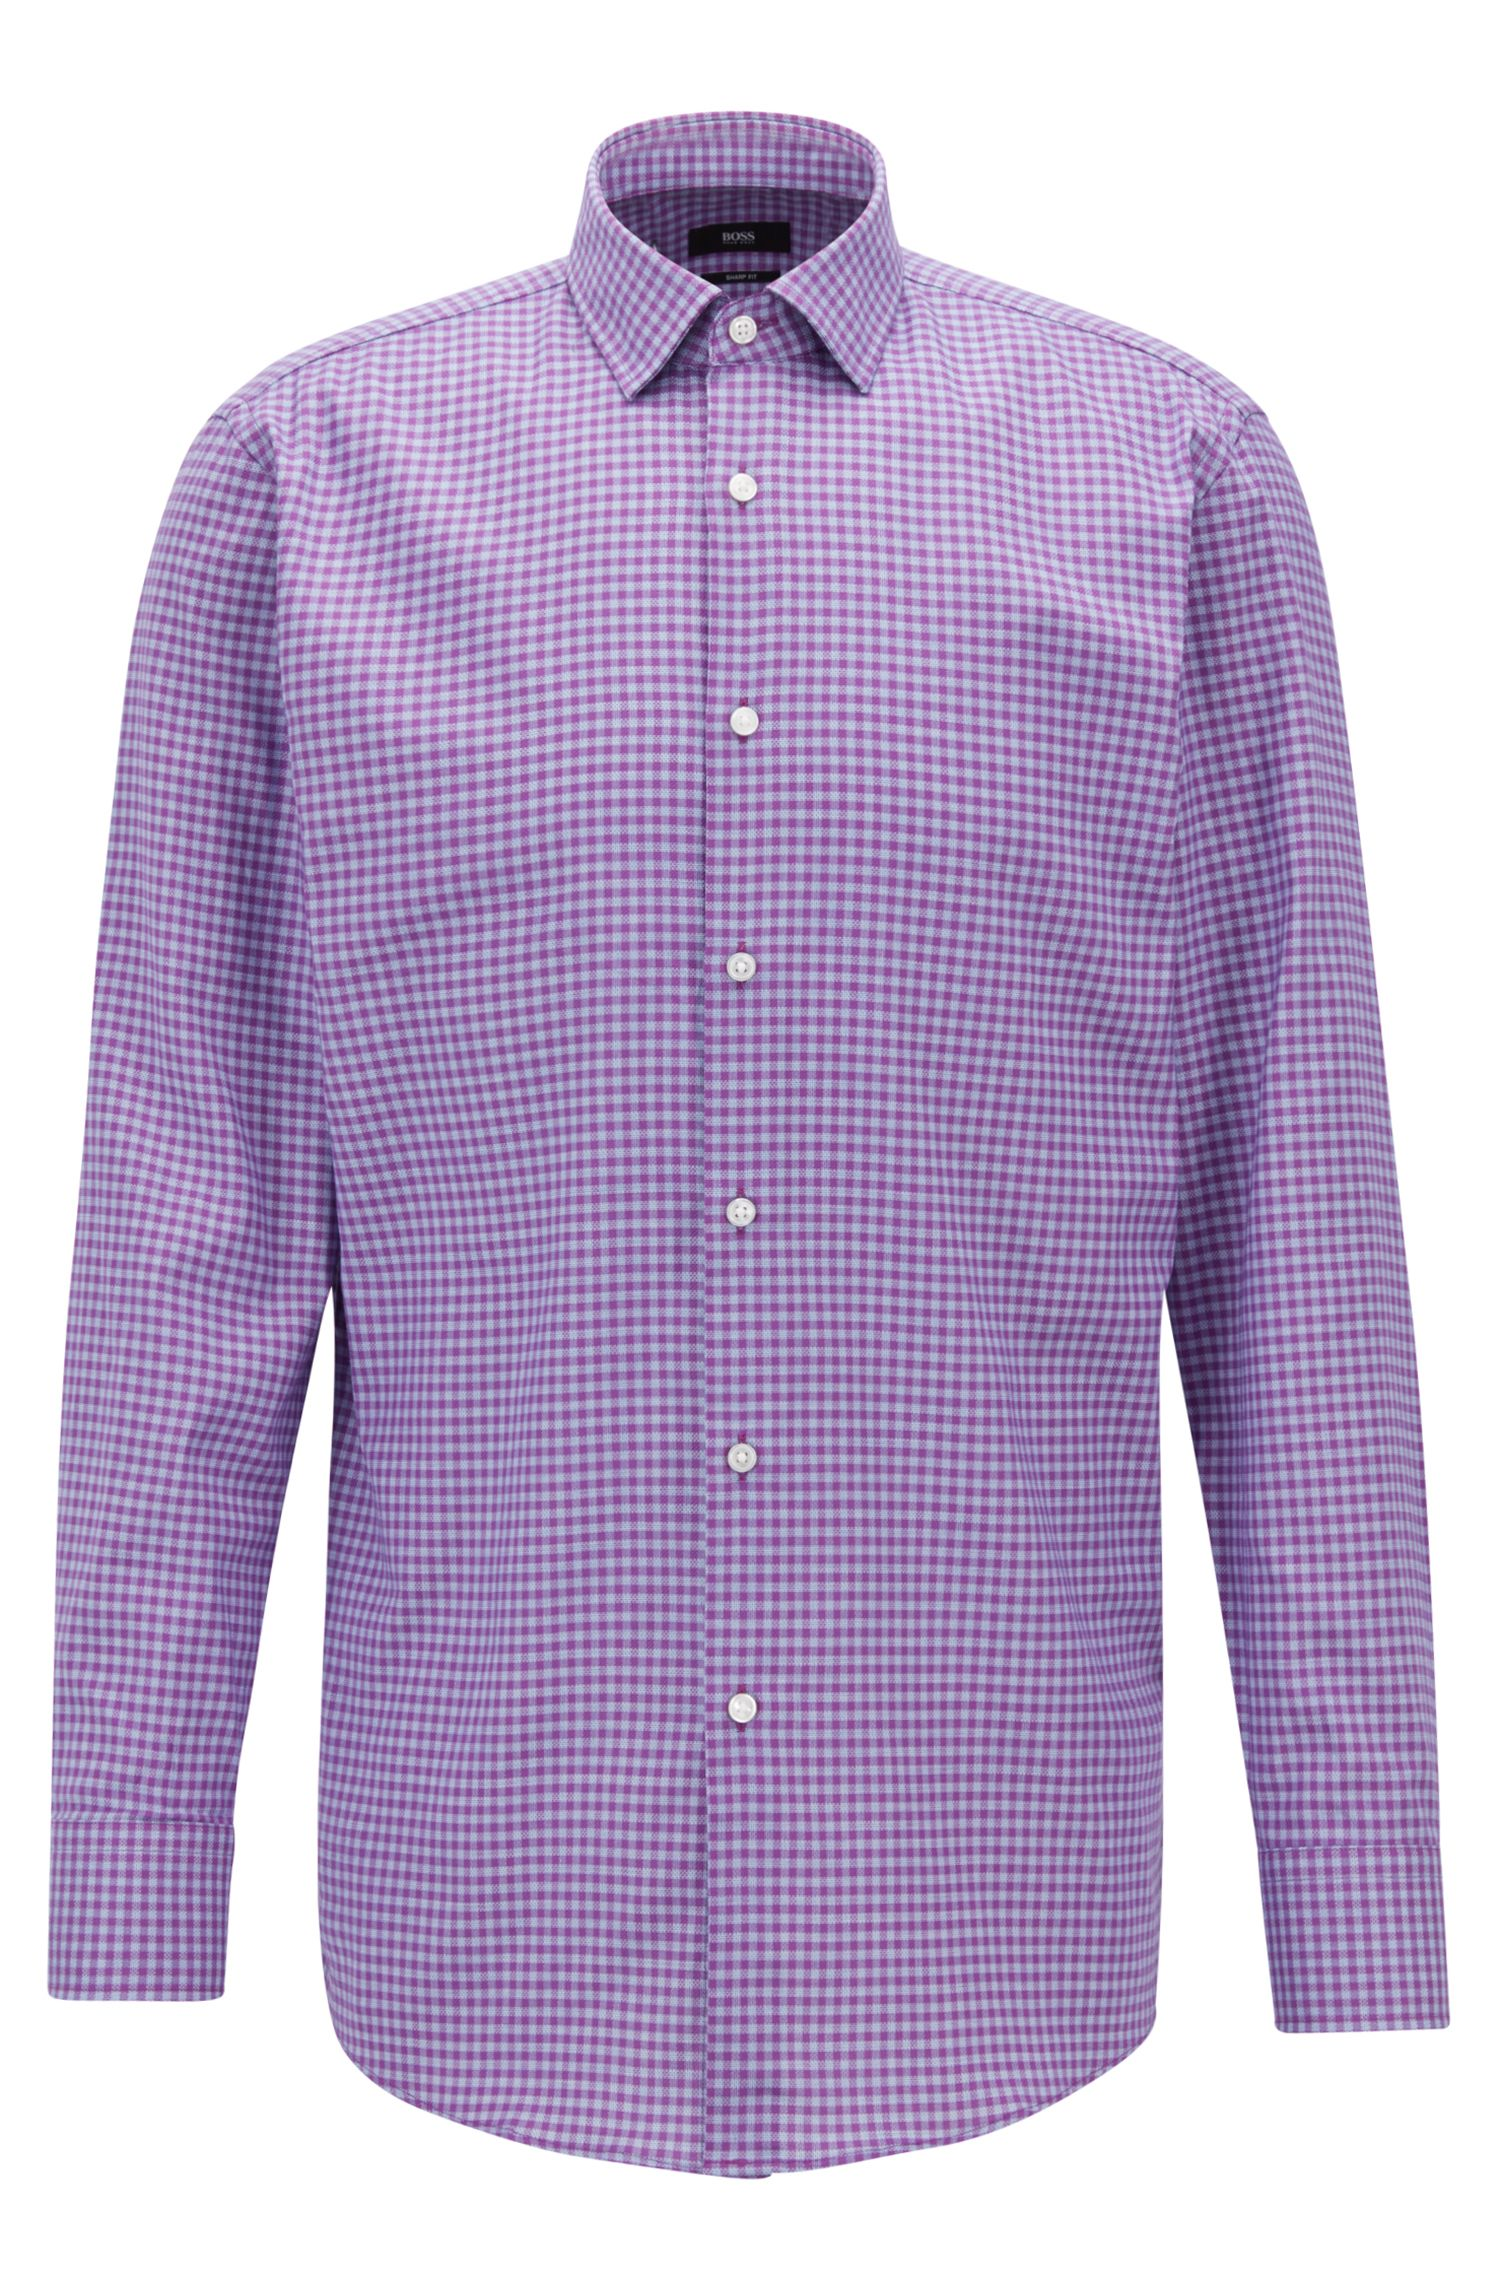 Sharp-fit shirt in cotton twill with Vichy check pattern, Dark pink